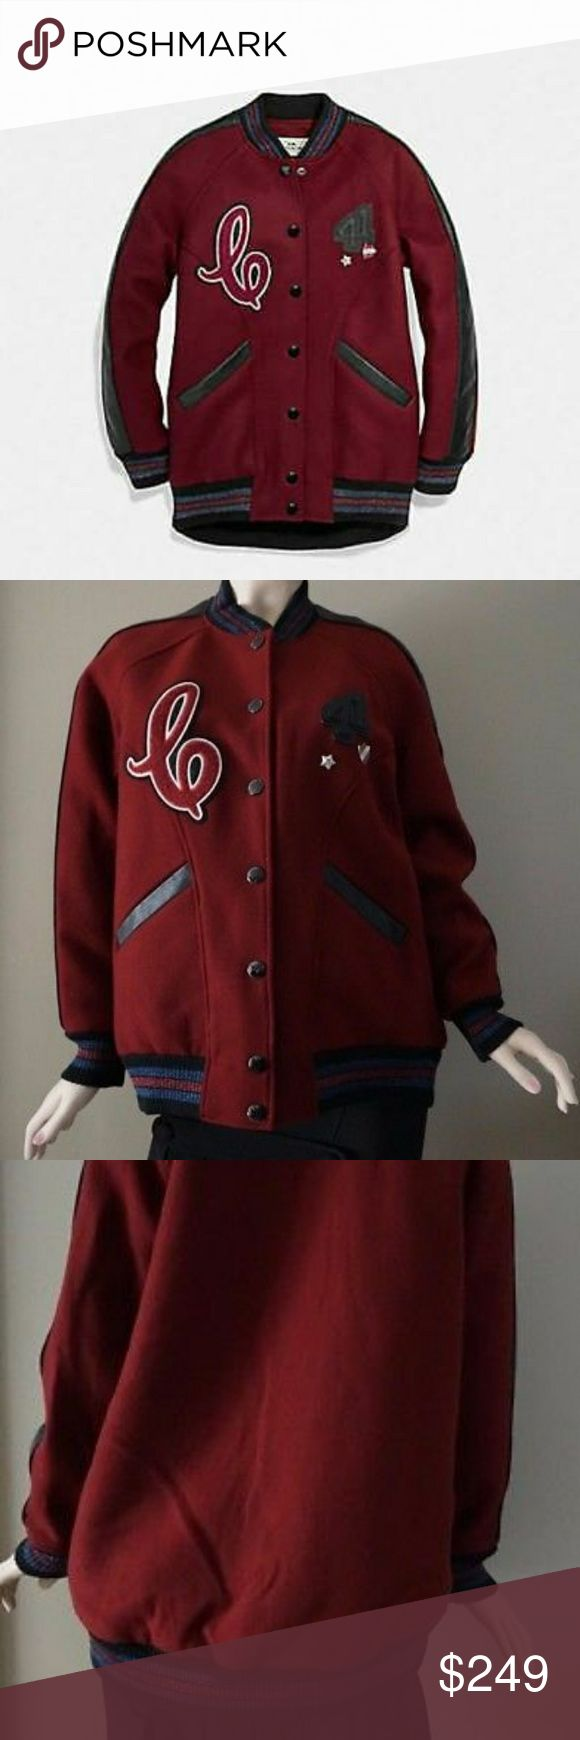 Nwt Coach Boyfriend Varsity Jacket Nwt women's Coach Boyfriend Varsity Jacket  Ships with Coach garment bag Msrp $795 No offers No trades Coach Jackets & Coats Utility Jackets